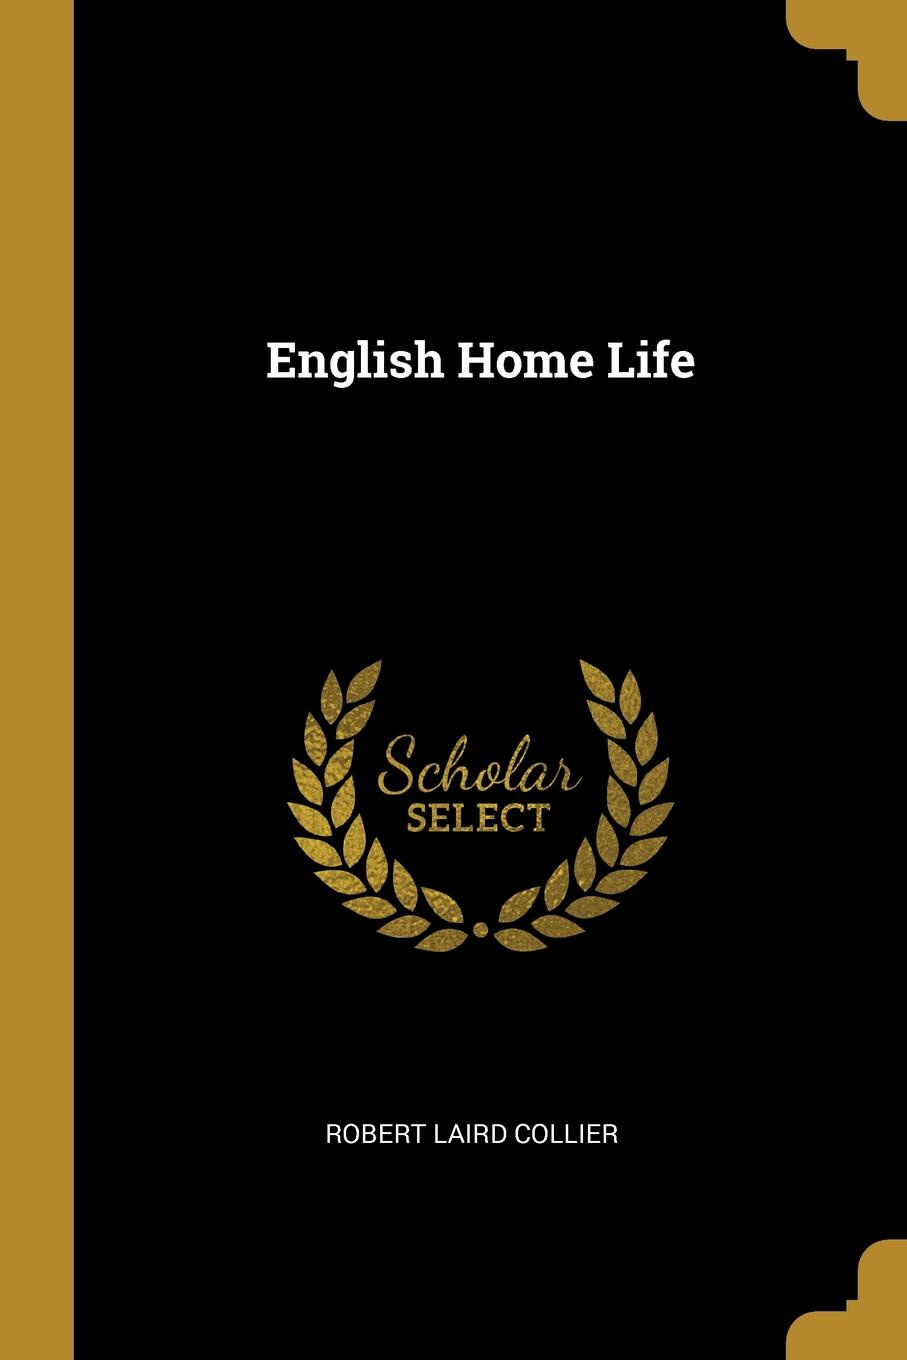 Robert Laird Collier. English Home Life